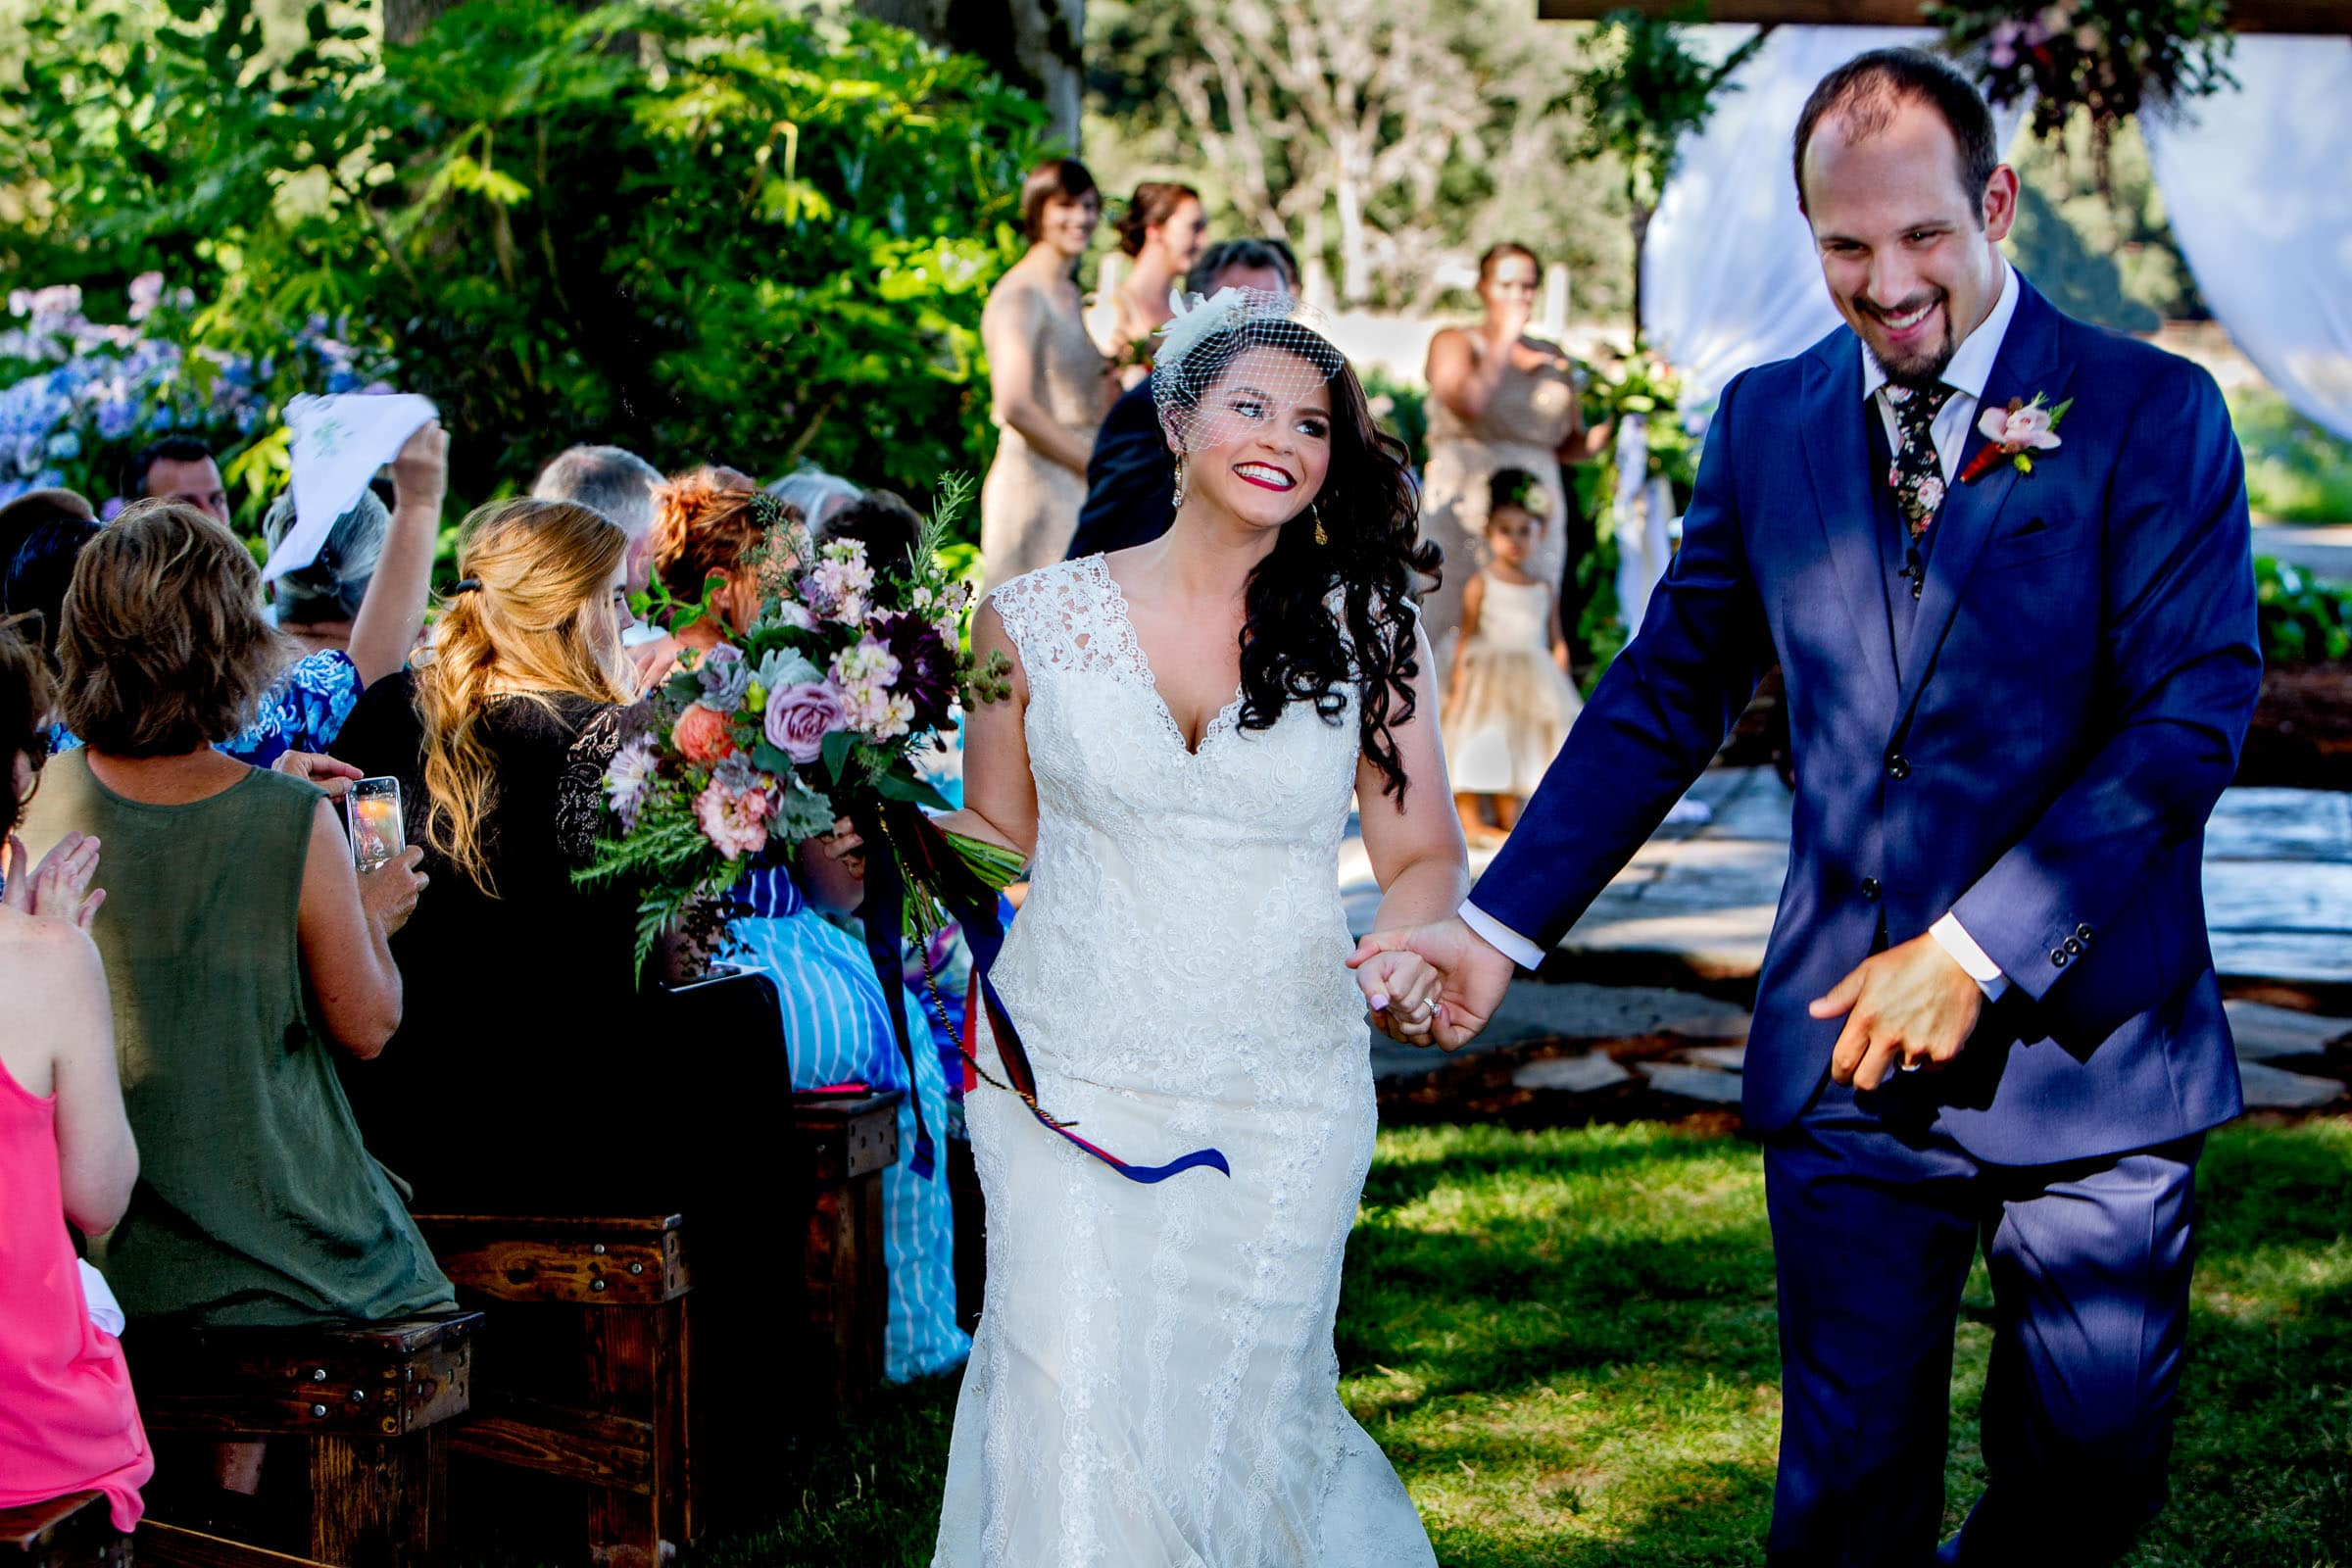 A happy bride and groom exiting their Postlewait's Country wedding located in the heart of the Willamette Valley between Portland and Salem near Aurora, Oregon